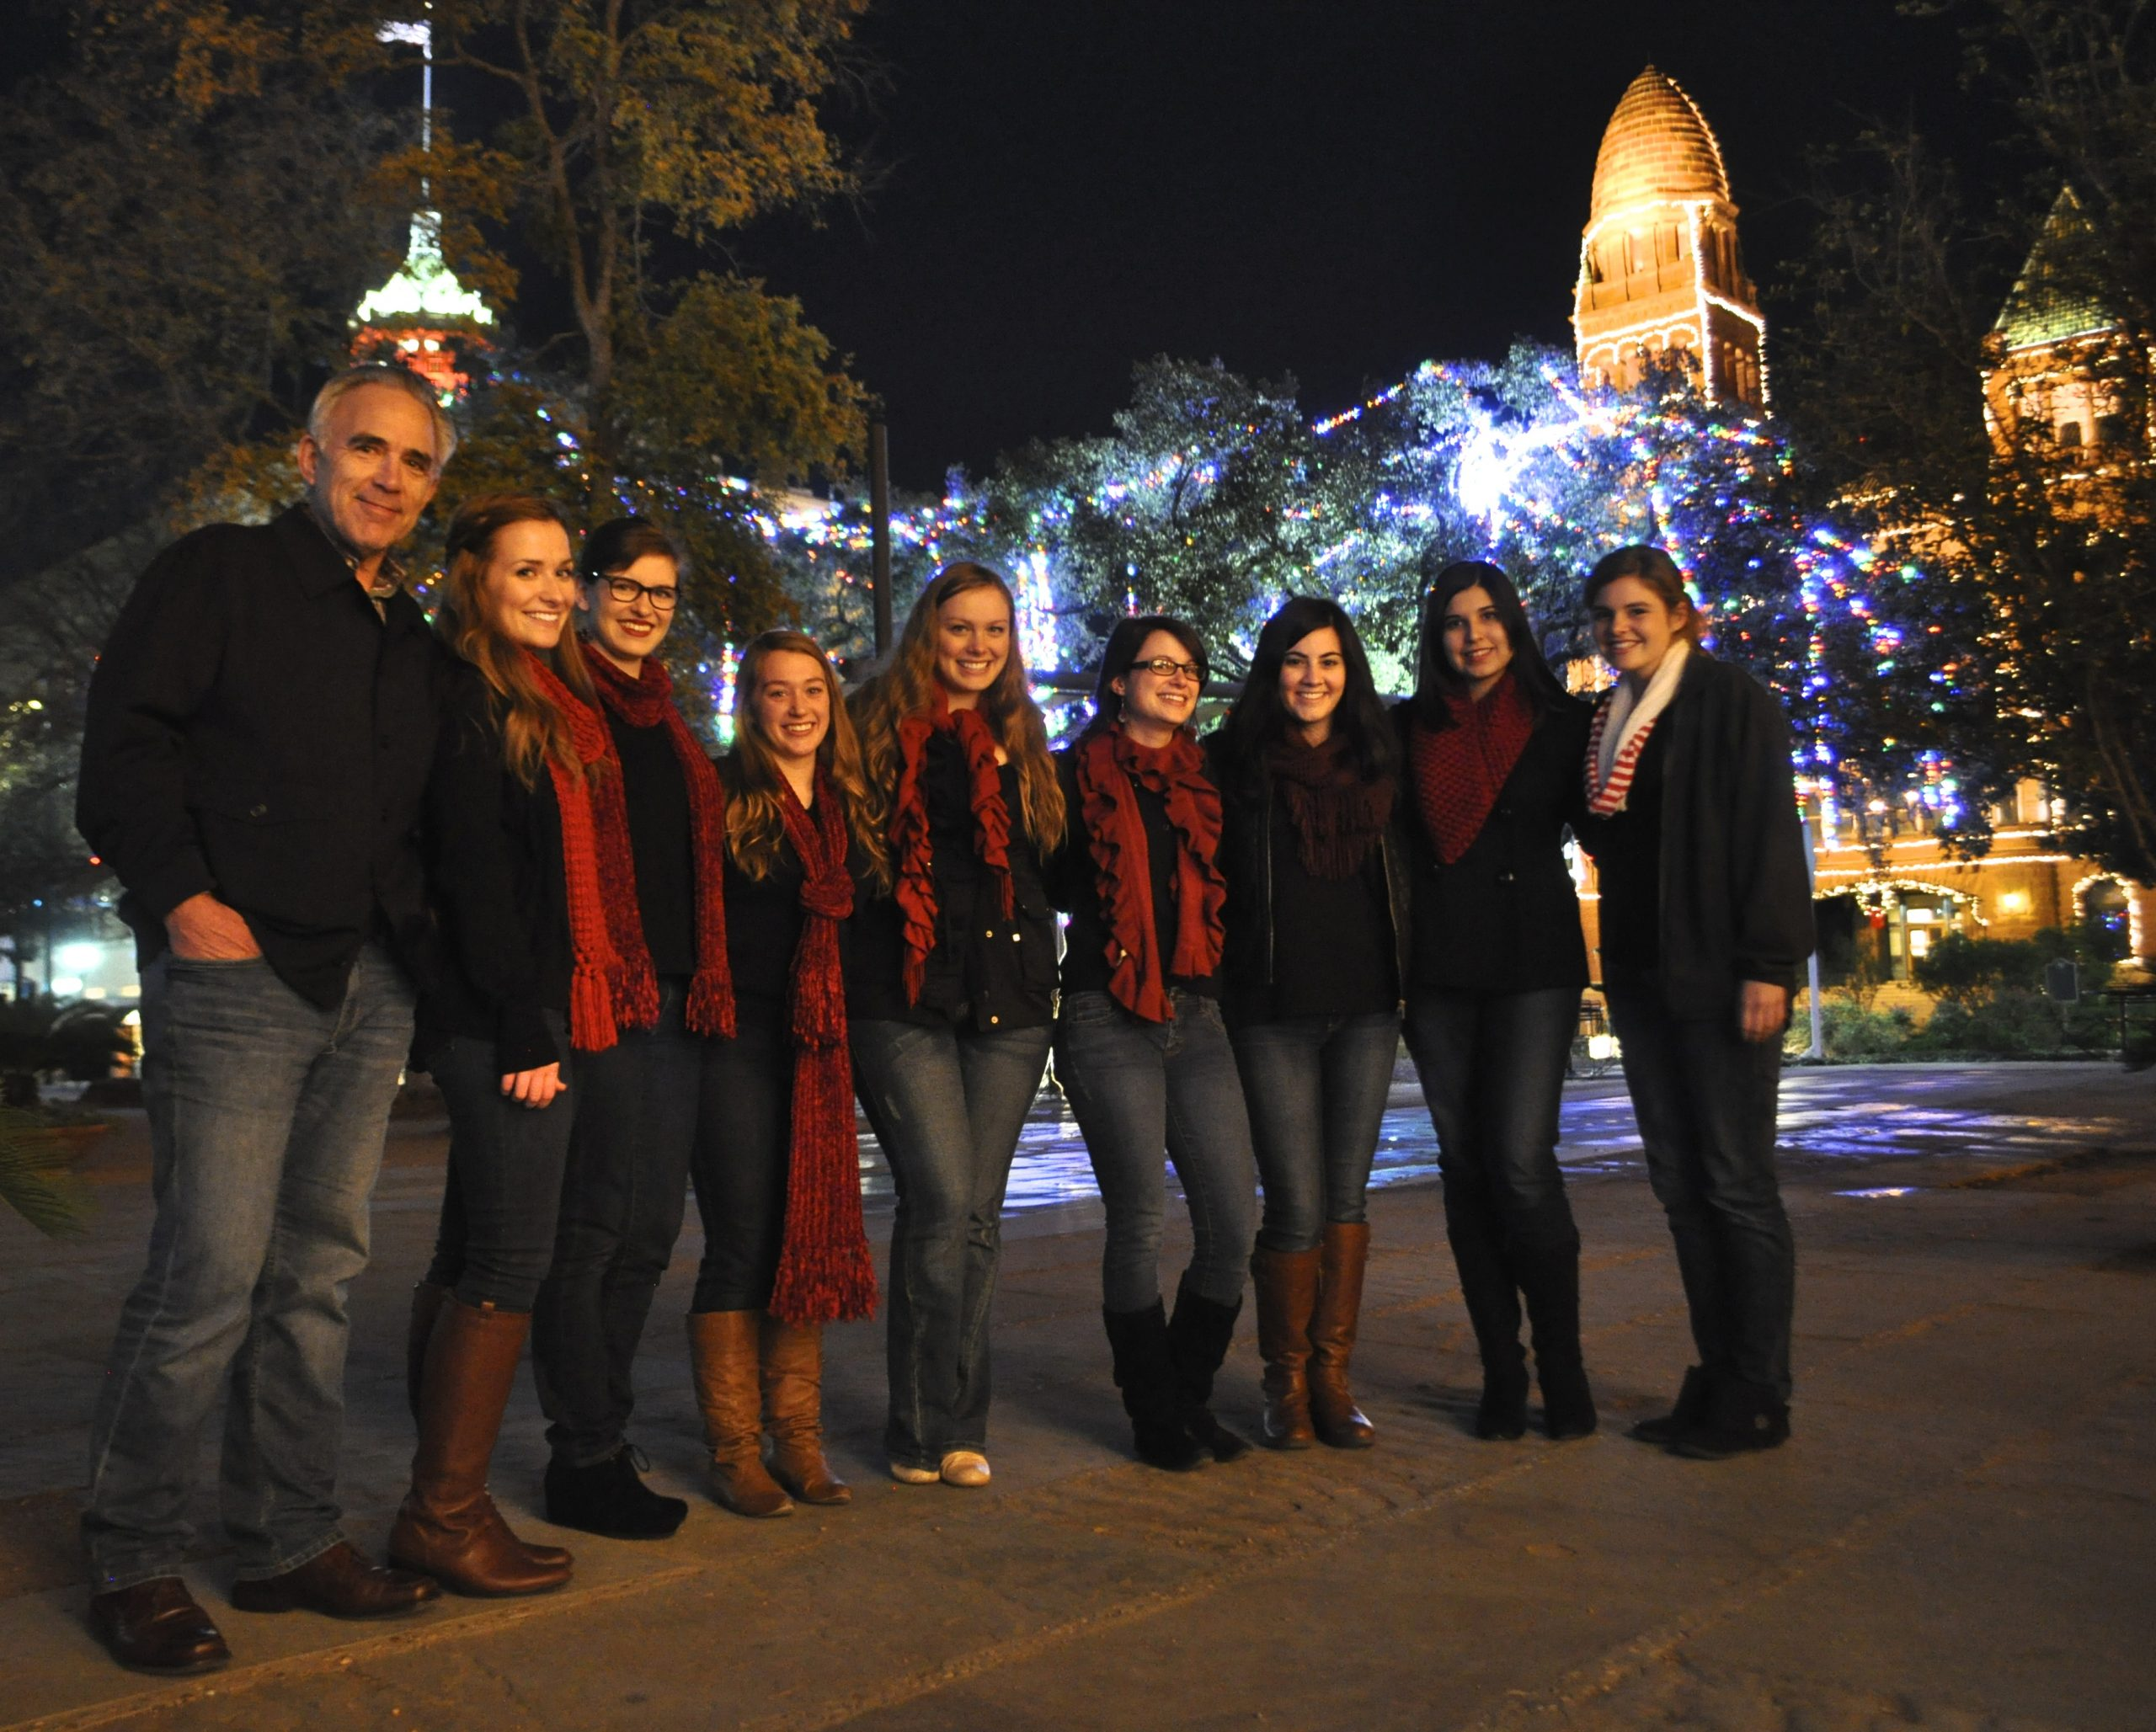 Robert Rivard stands with The AcaBellas after their Something Monday performance in Main Plaza. Photo by Iris Dimmick.